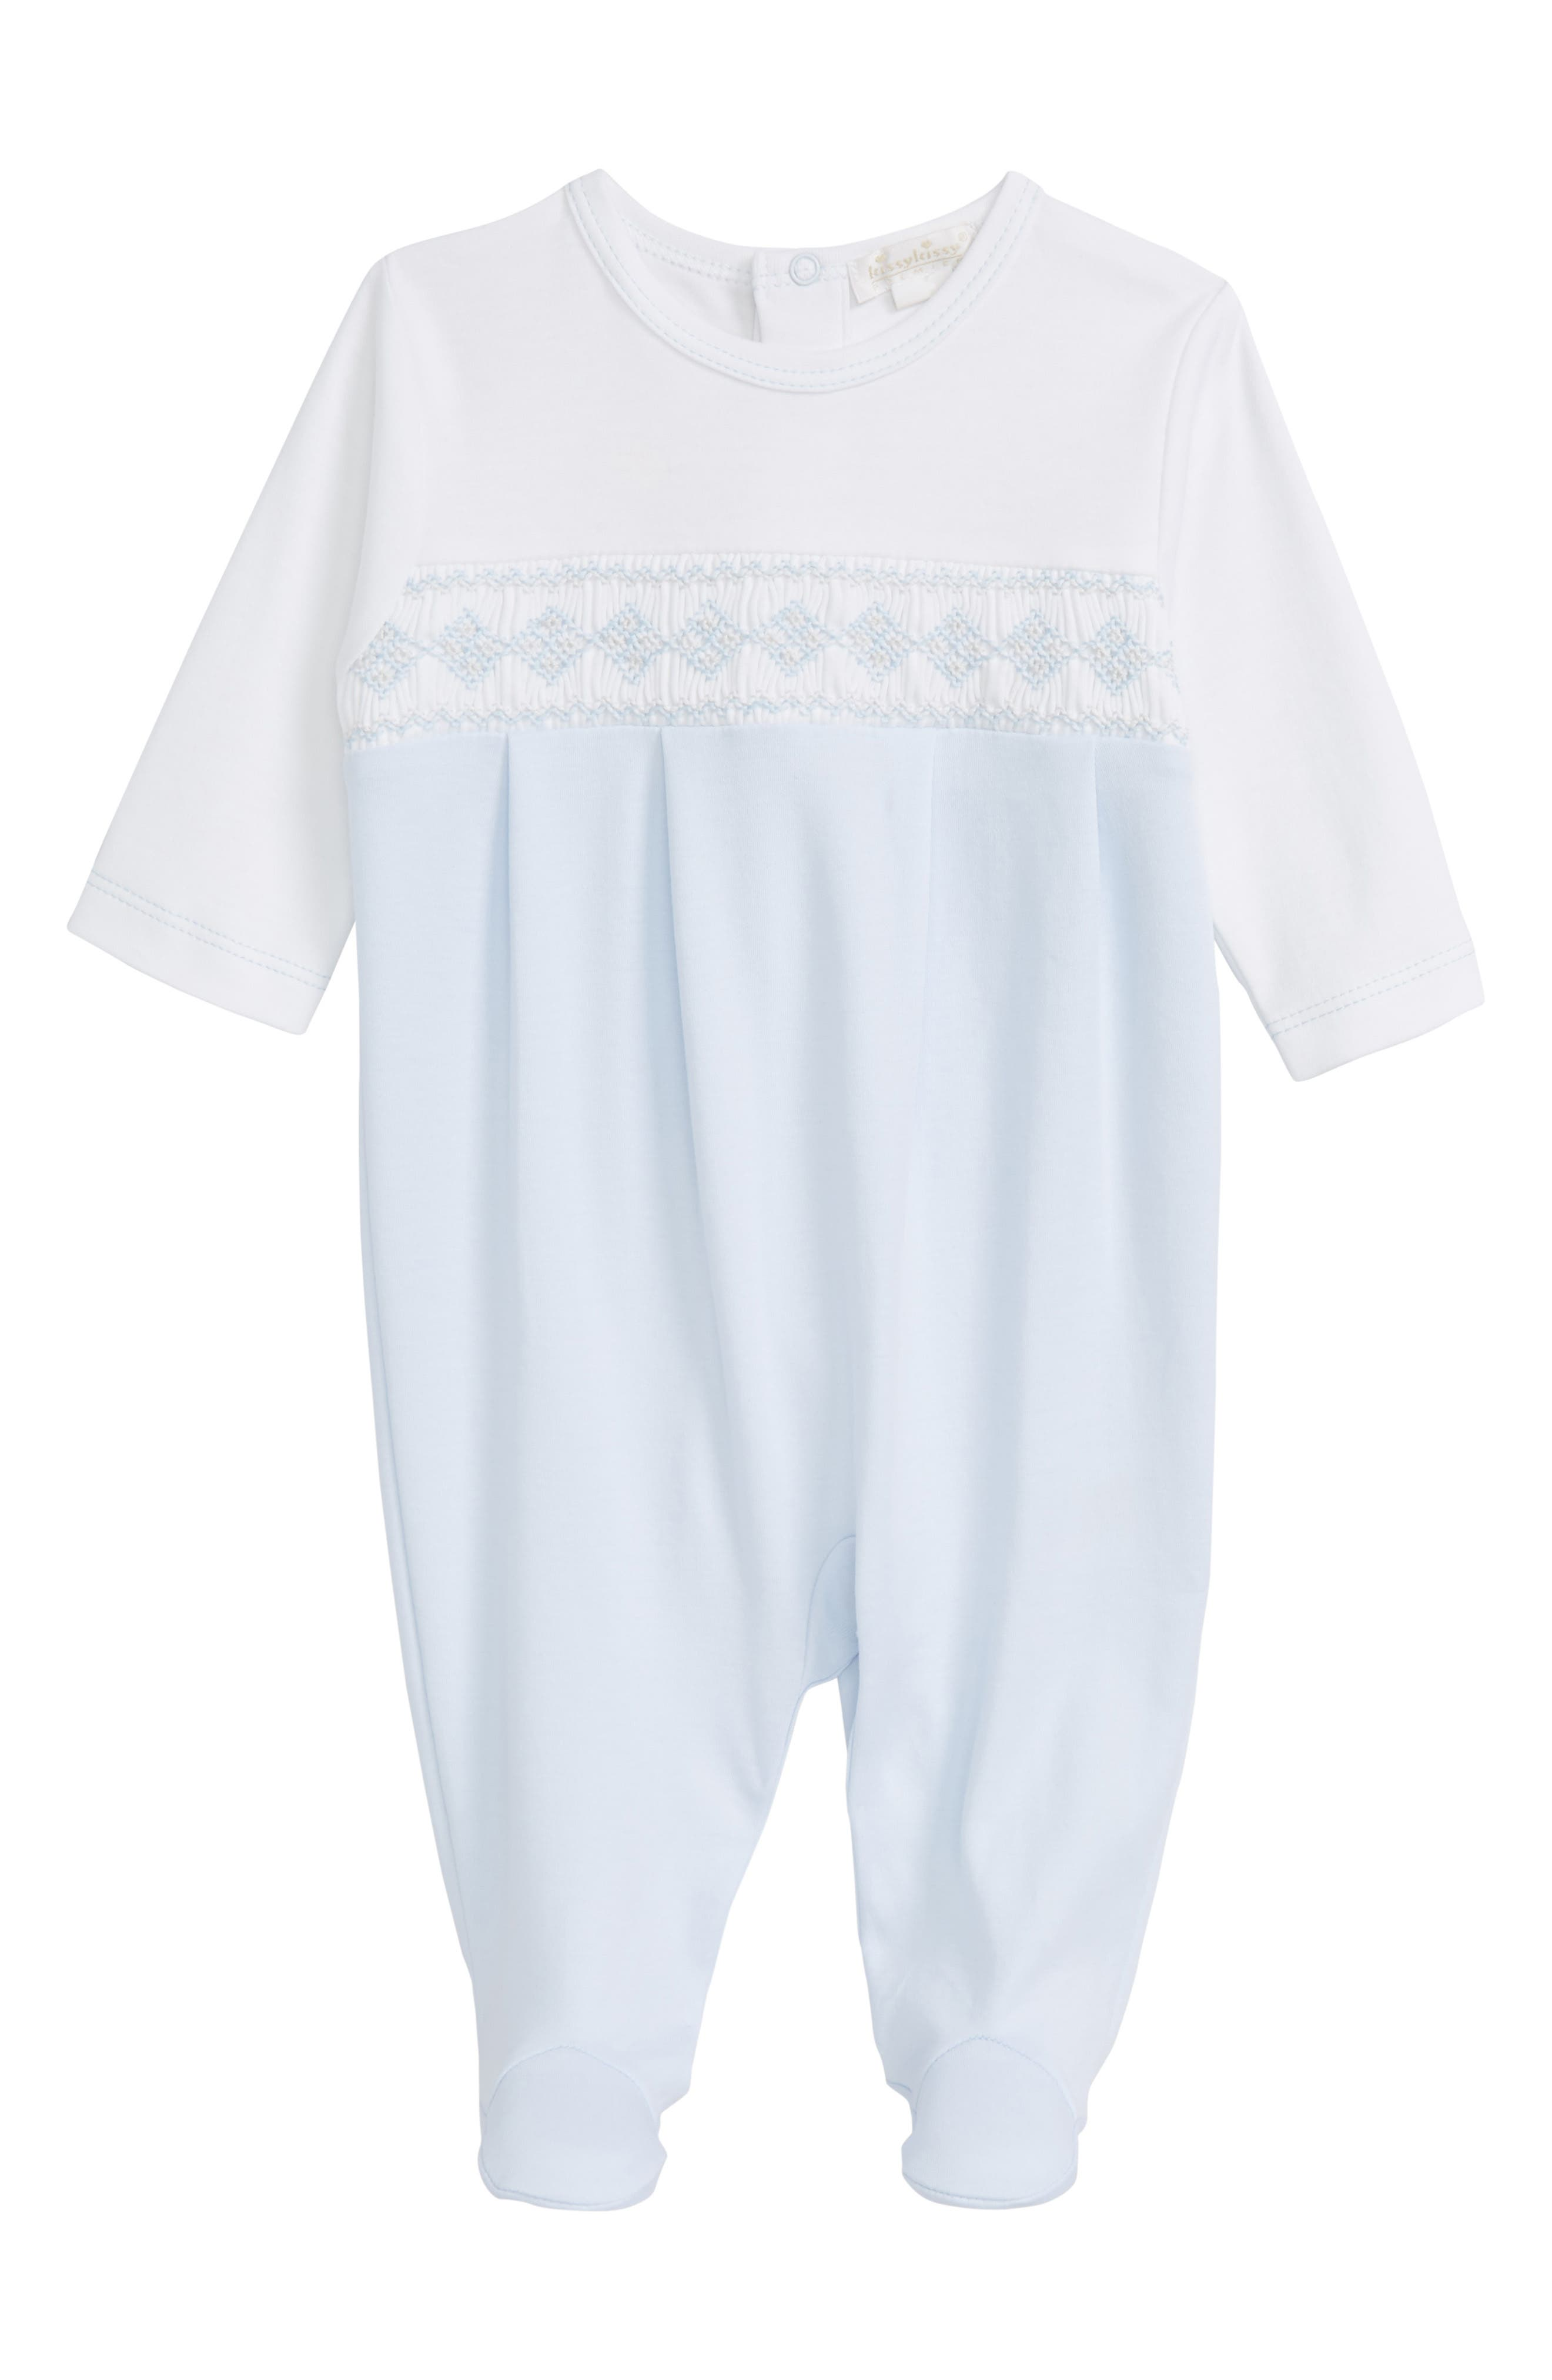 Main Image - Kissy Kissy Club Summer Smocked Pima Cotton Footie (Baby Boys)